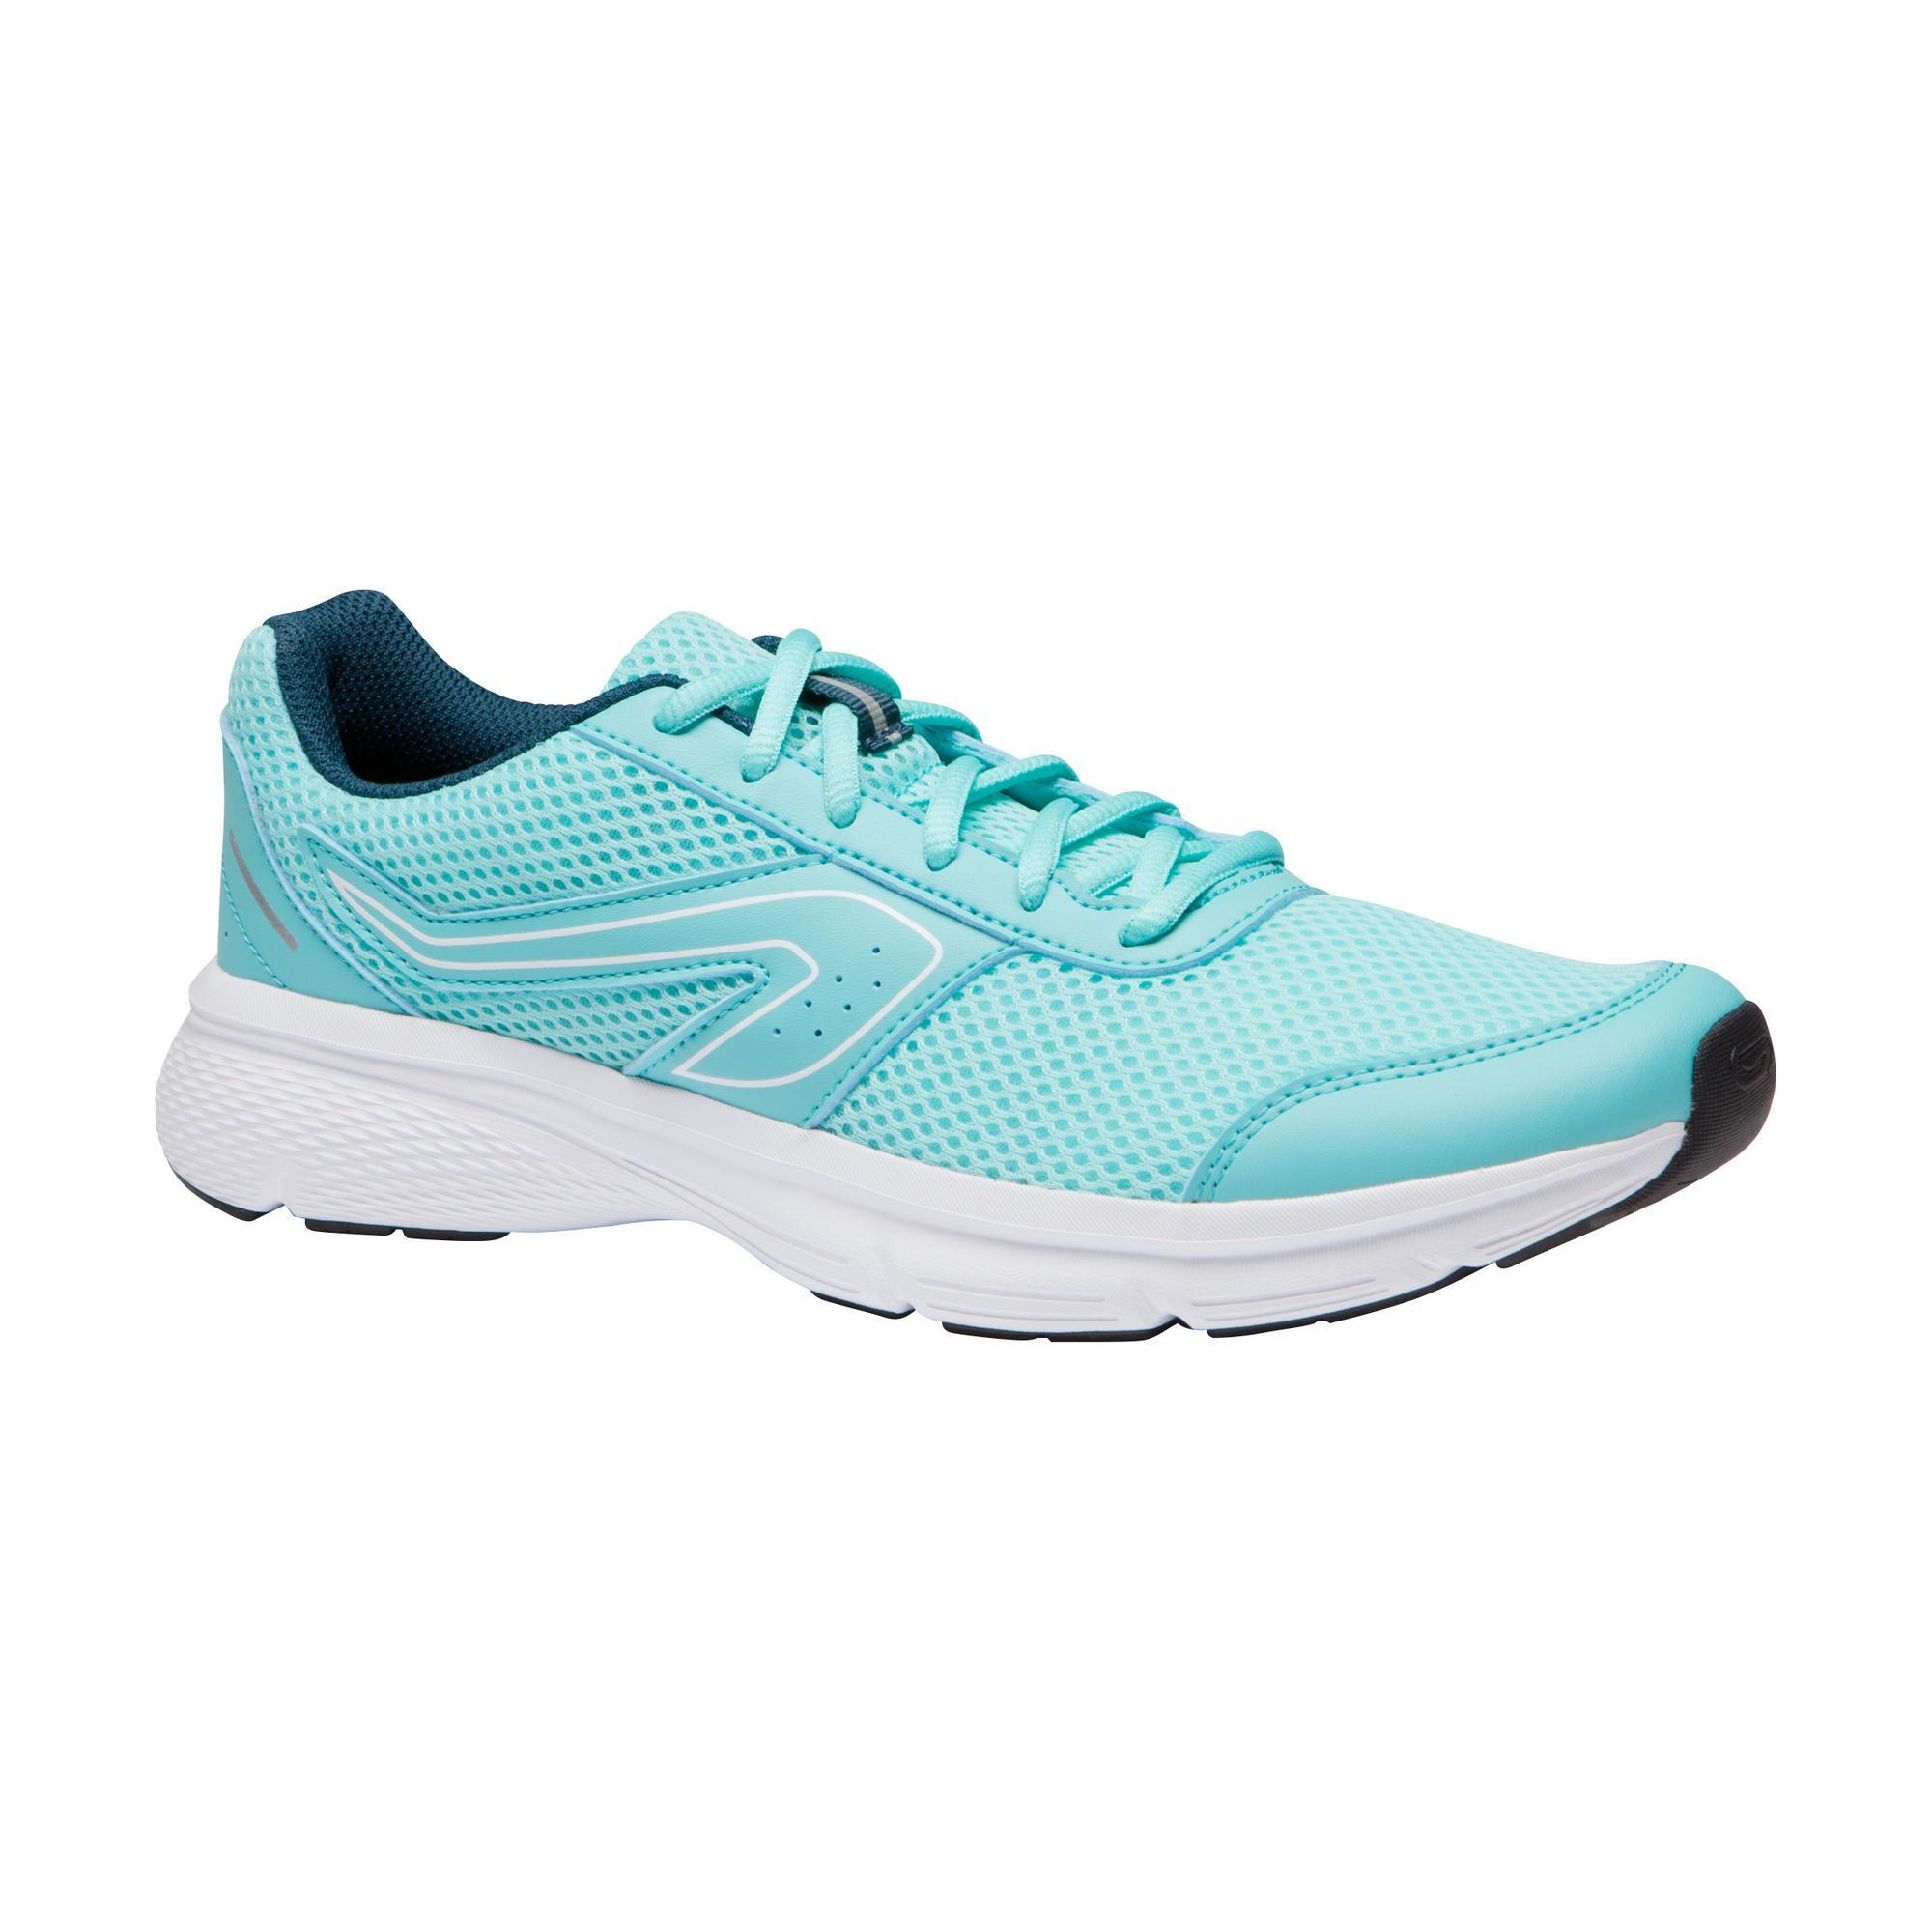 Zapatillas Running | Zapatillas Correr | Decathlon